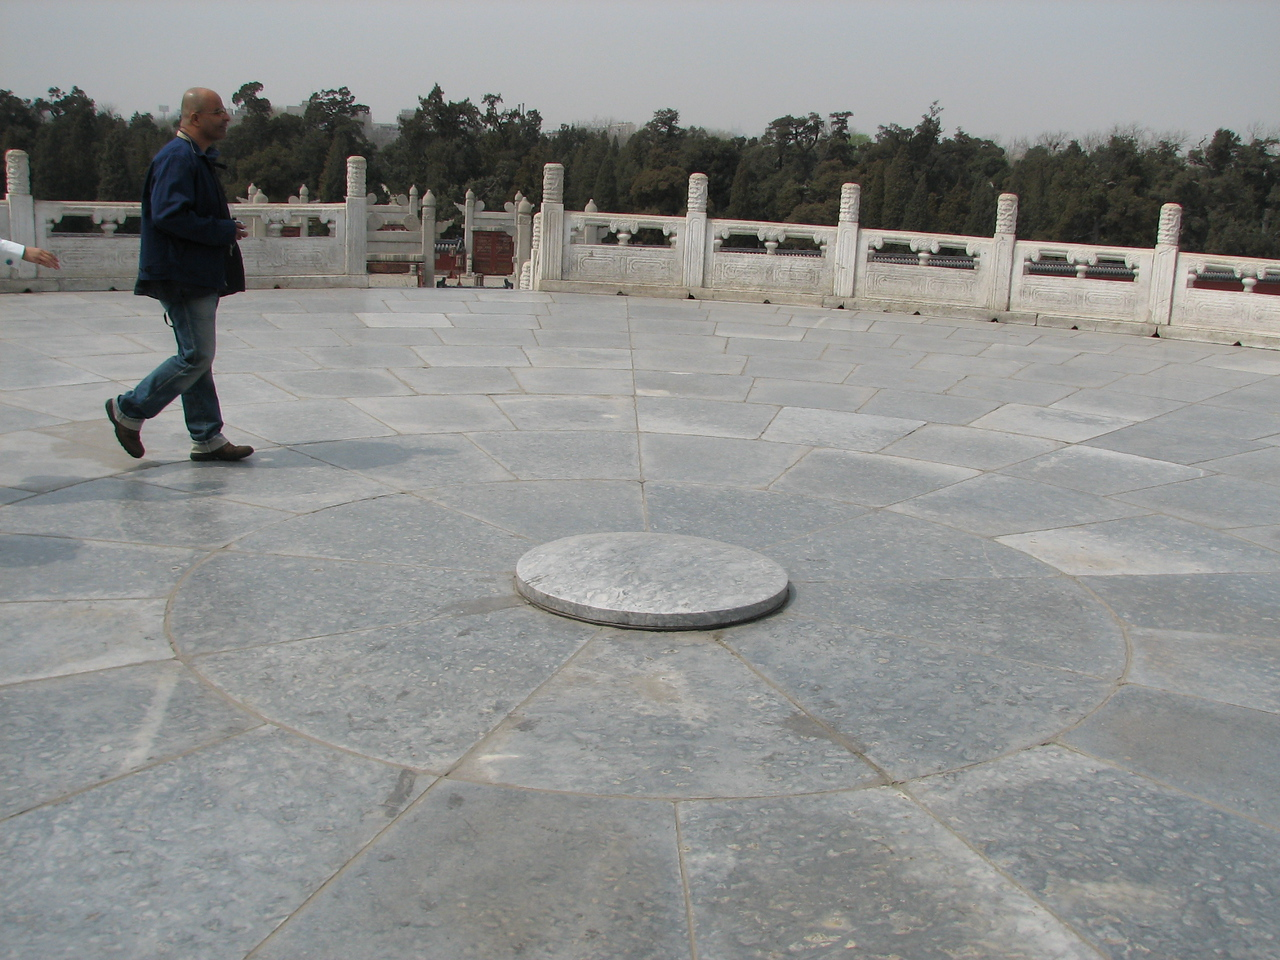 Center stone of the Round Altar. Standing on this stone and speaking will supposedly make your voice audible from far away. There are 9 stones in the first circle, then 18, then 27, etc.